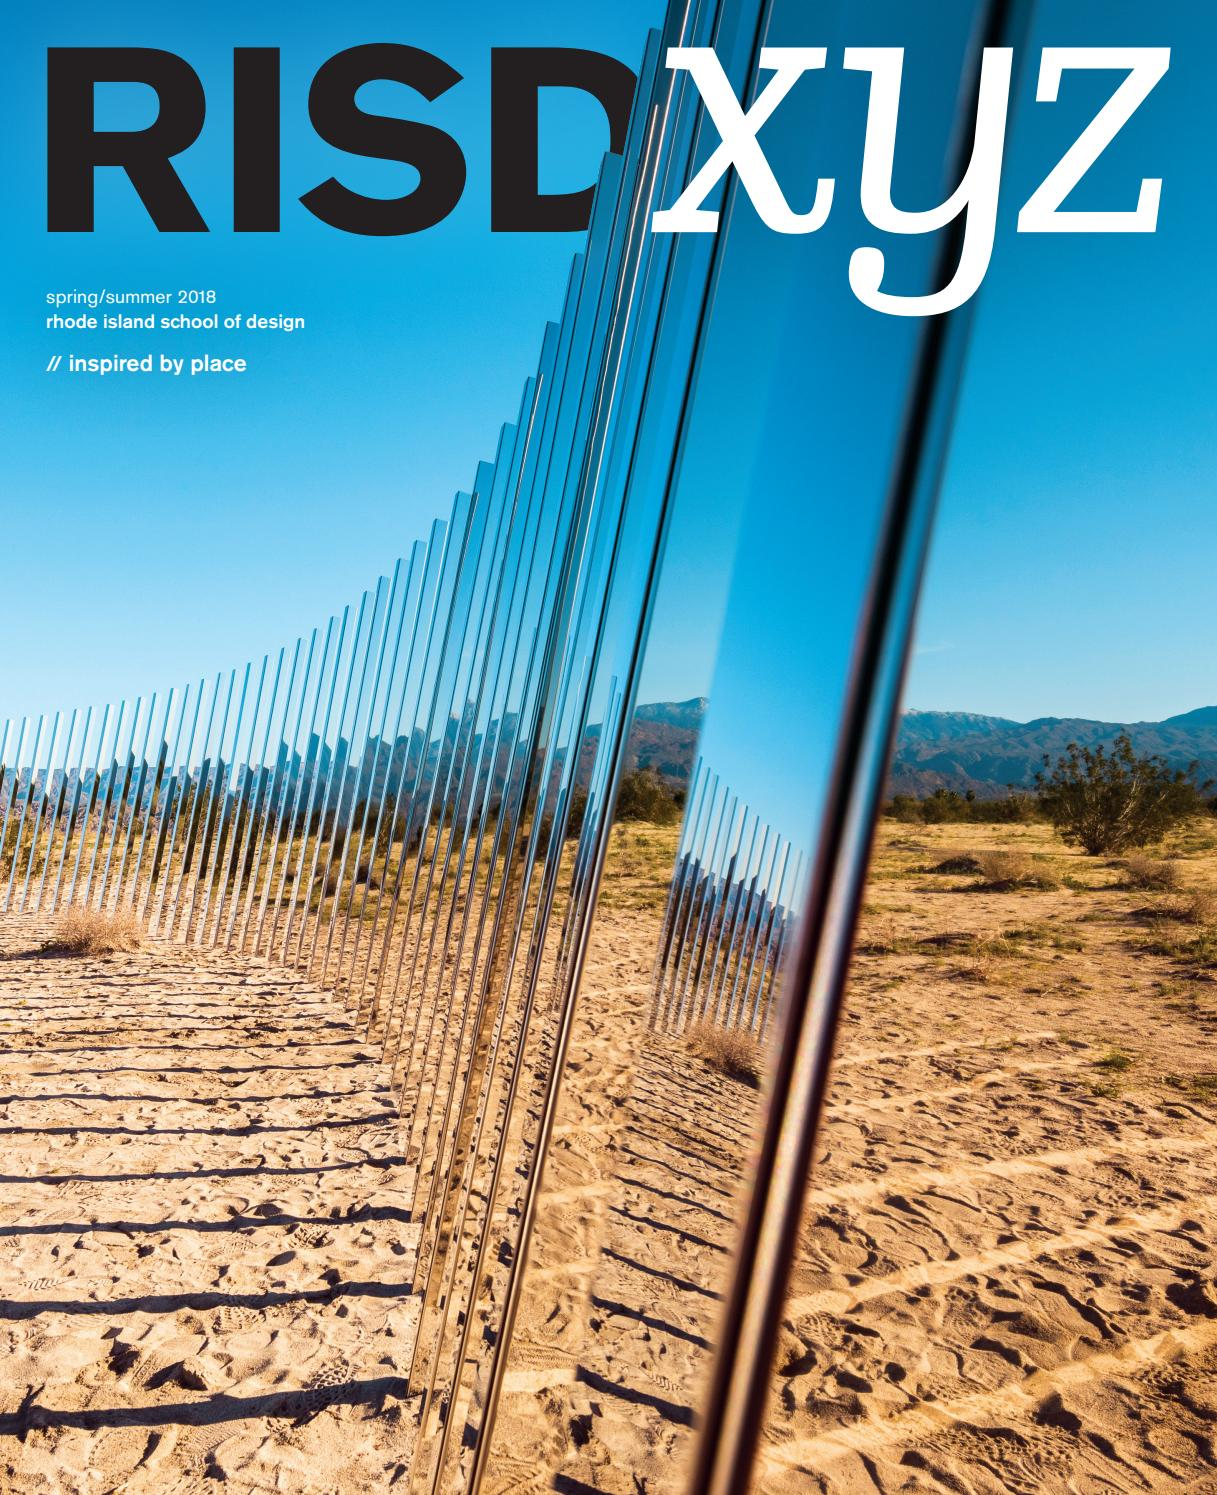 RISD XYZ Spring/Summer 2018 by Rhode Island School of Design - issuu